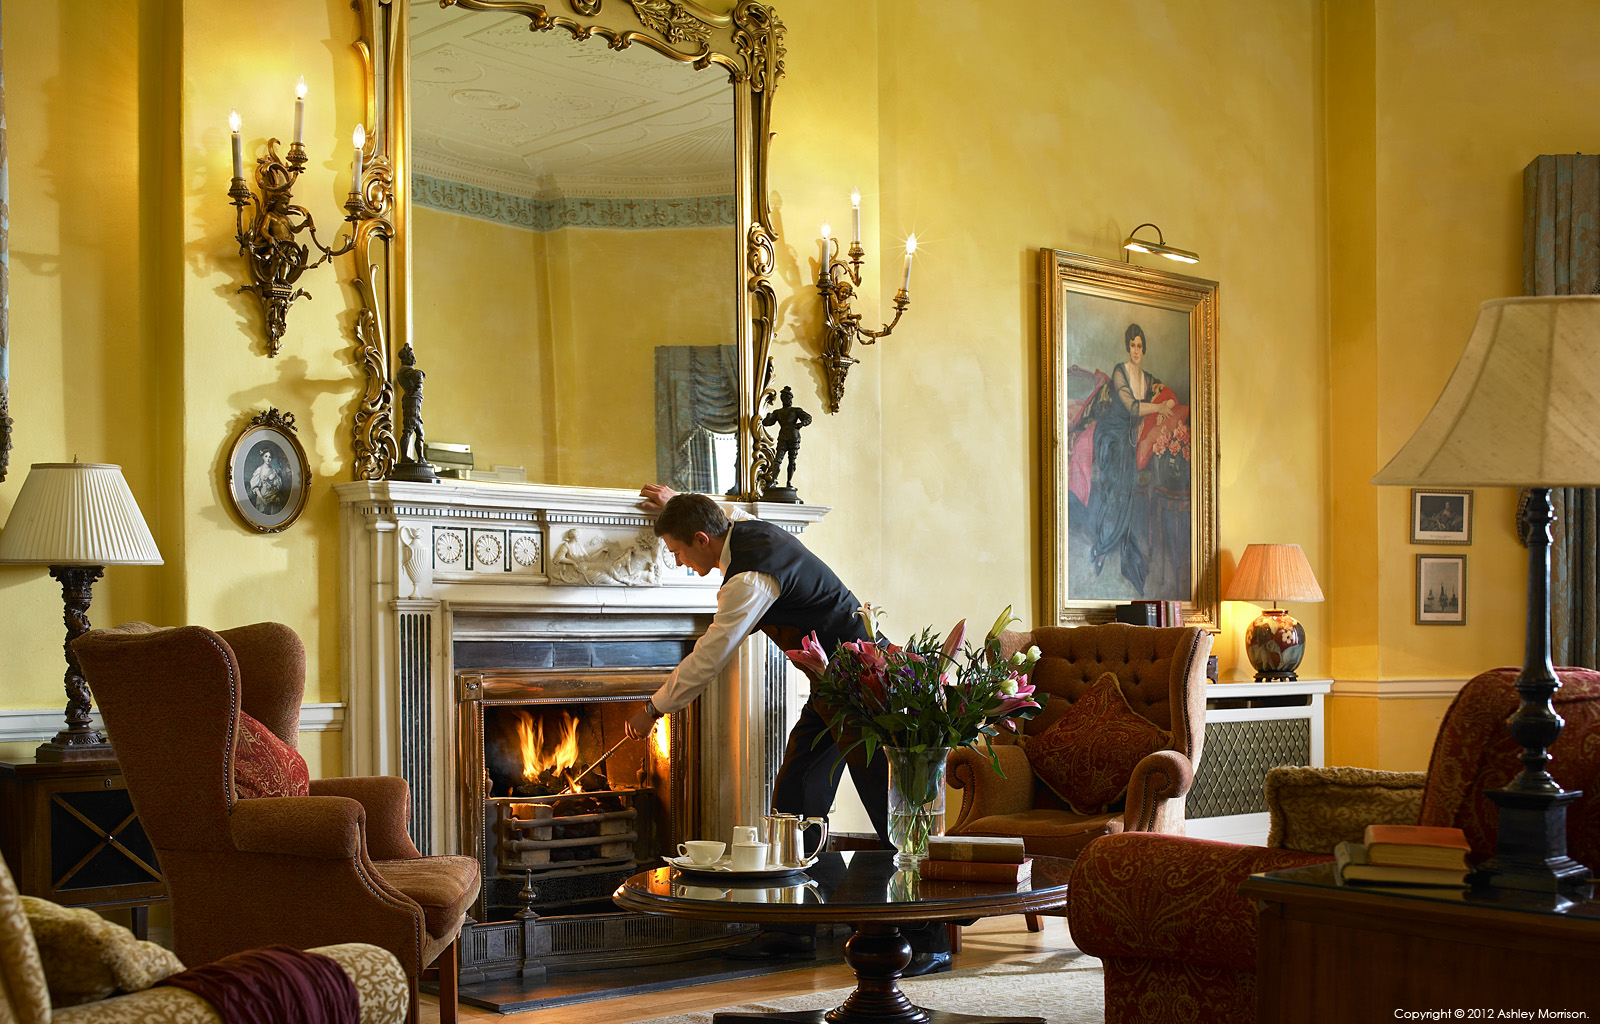 A member of staff stoking the fire in the Reading room in Mount Juliet House on the Mount Juliet Country Estate in County Kilkenny by Ashley Morrison.